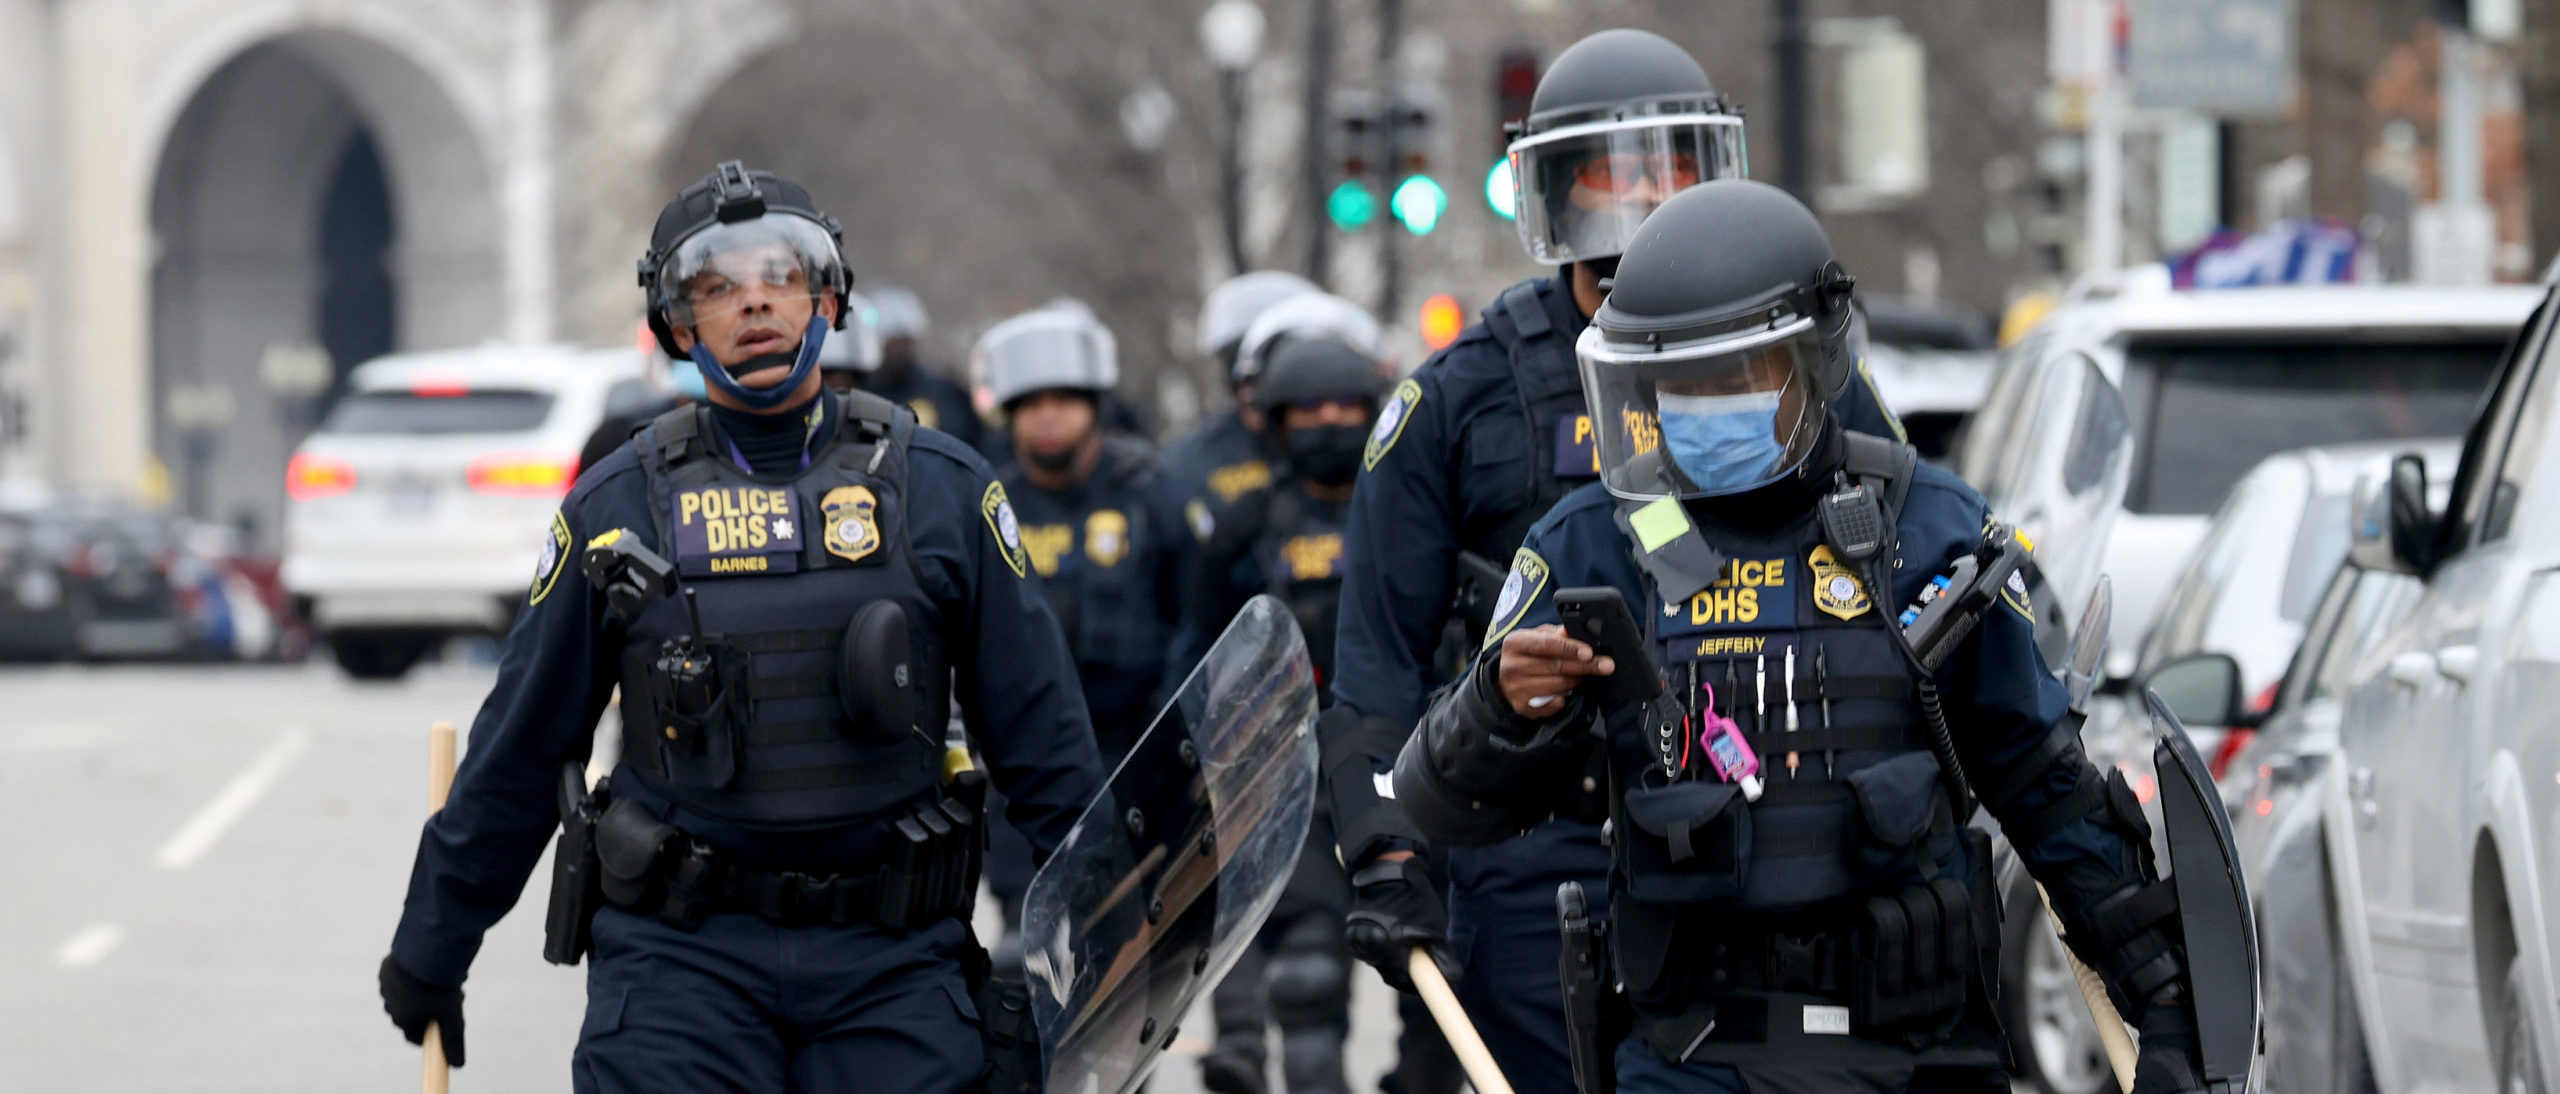 WASHINGTON, DC - JANUARY 06: Police officers in riot gear walks towards the U.S. Capitol as protesters enter the building on January 06, 2021 in Washington, DC. Trump supporters gathered in the nation's capital today to protest the ratification of President-elect Joe Biden's Electoral College victory over President Trump in the 2020 election. (Photo by Tasos Katopodis/Getty Images)